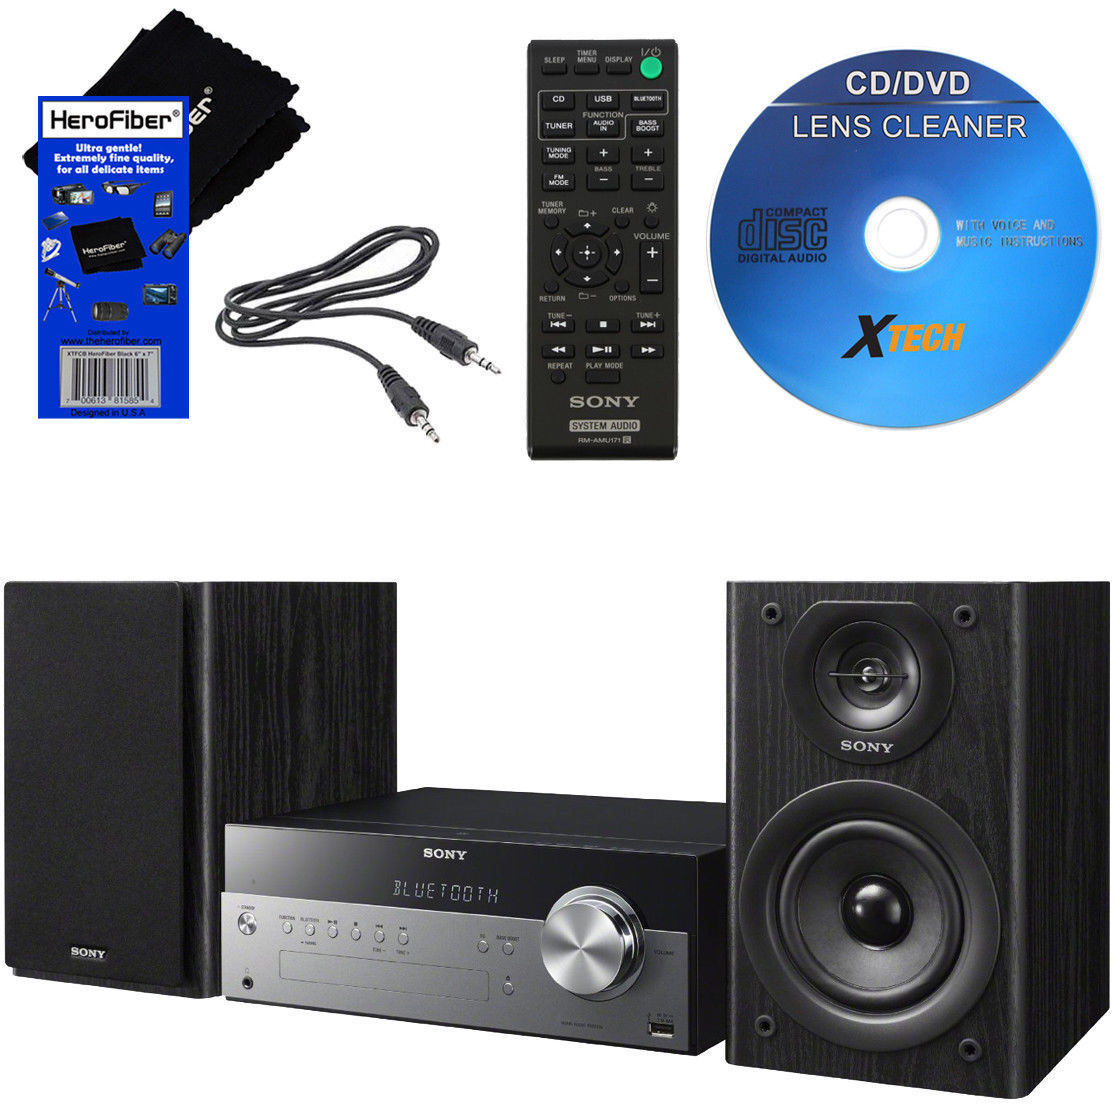 Sony CMT-SBT100 - Micro system - black, silver